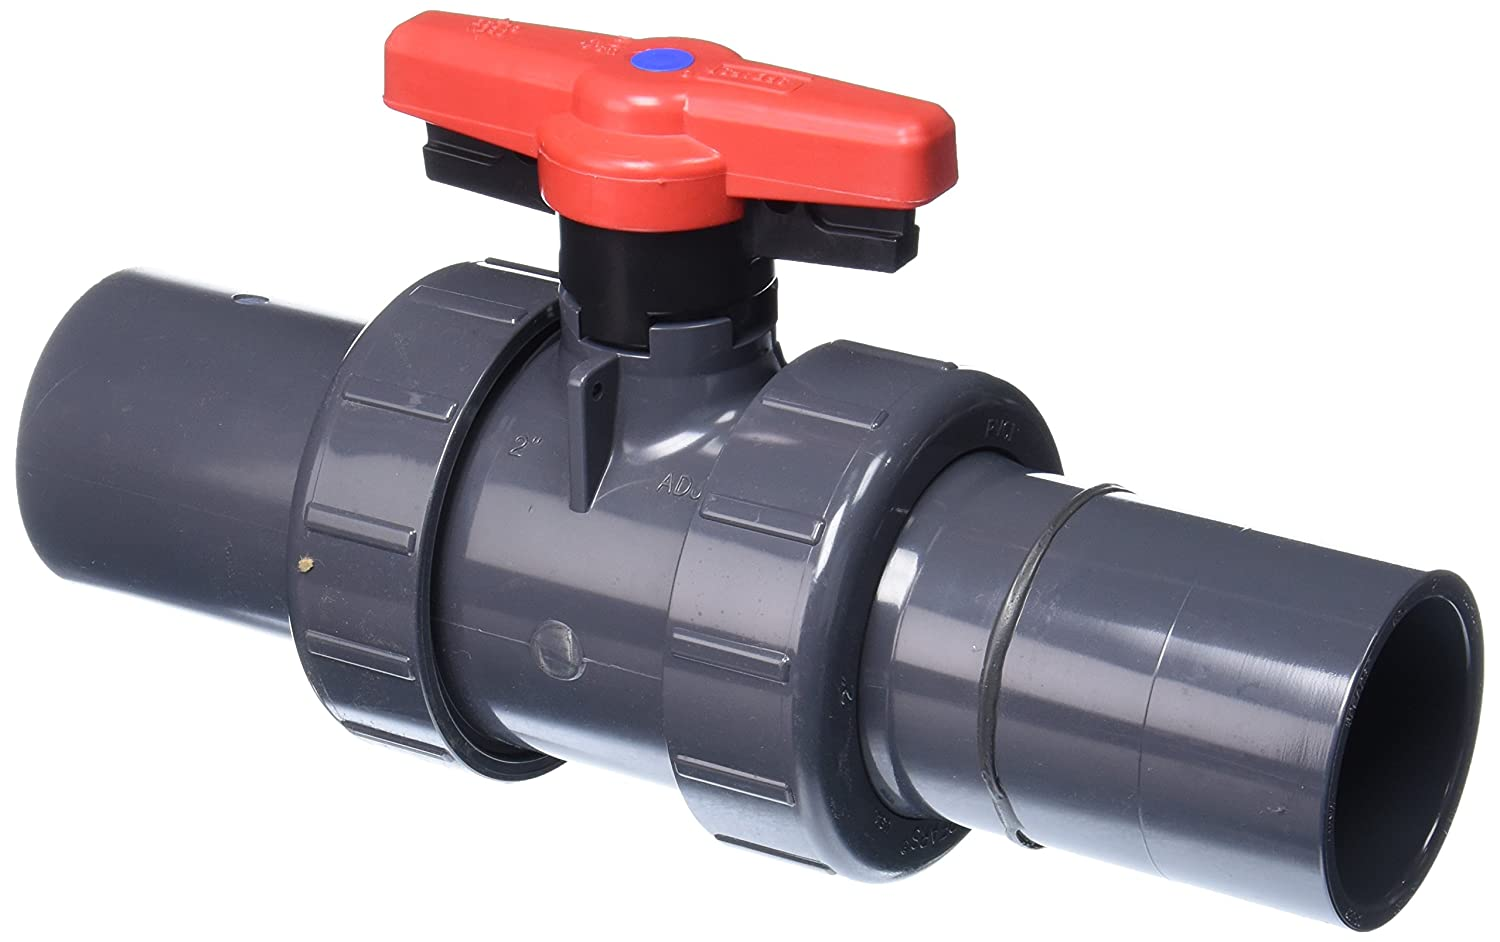 Spears 1832RS-020 PVC Schedule 80 Industrial Retrofit Ball Valves